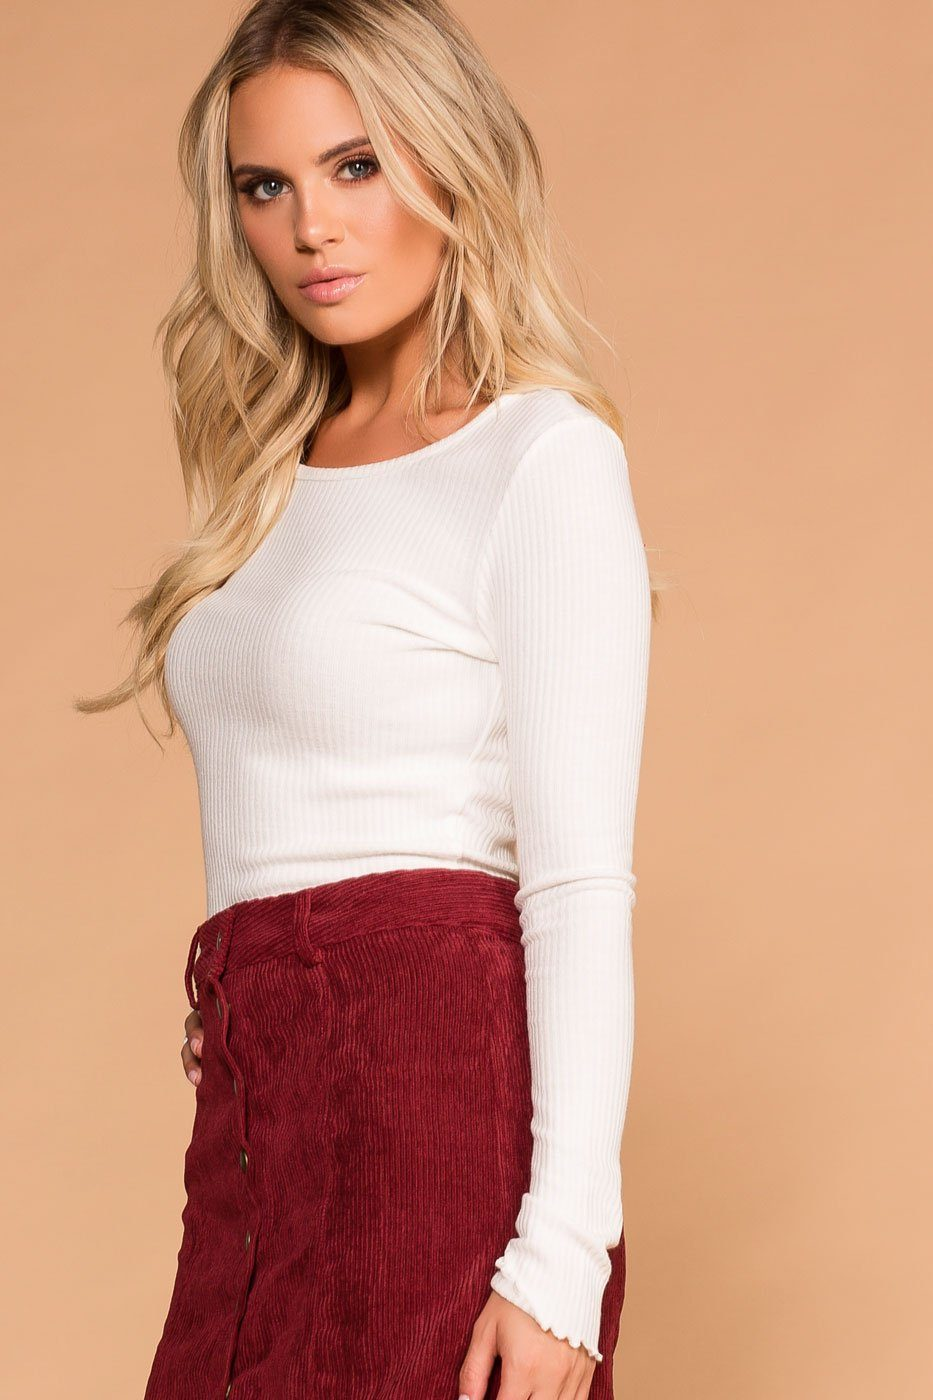 dc3febd852c Afternoon Breeze White Long Sleeve Crop Top